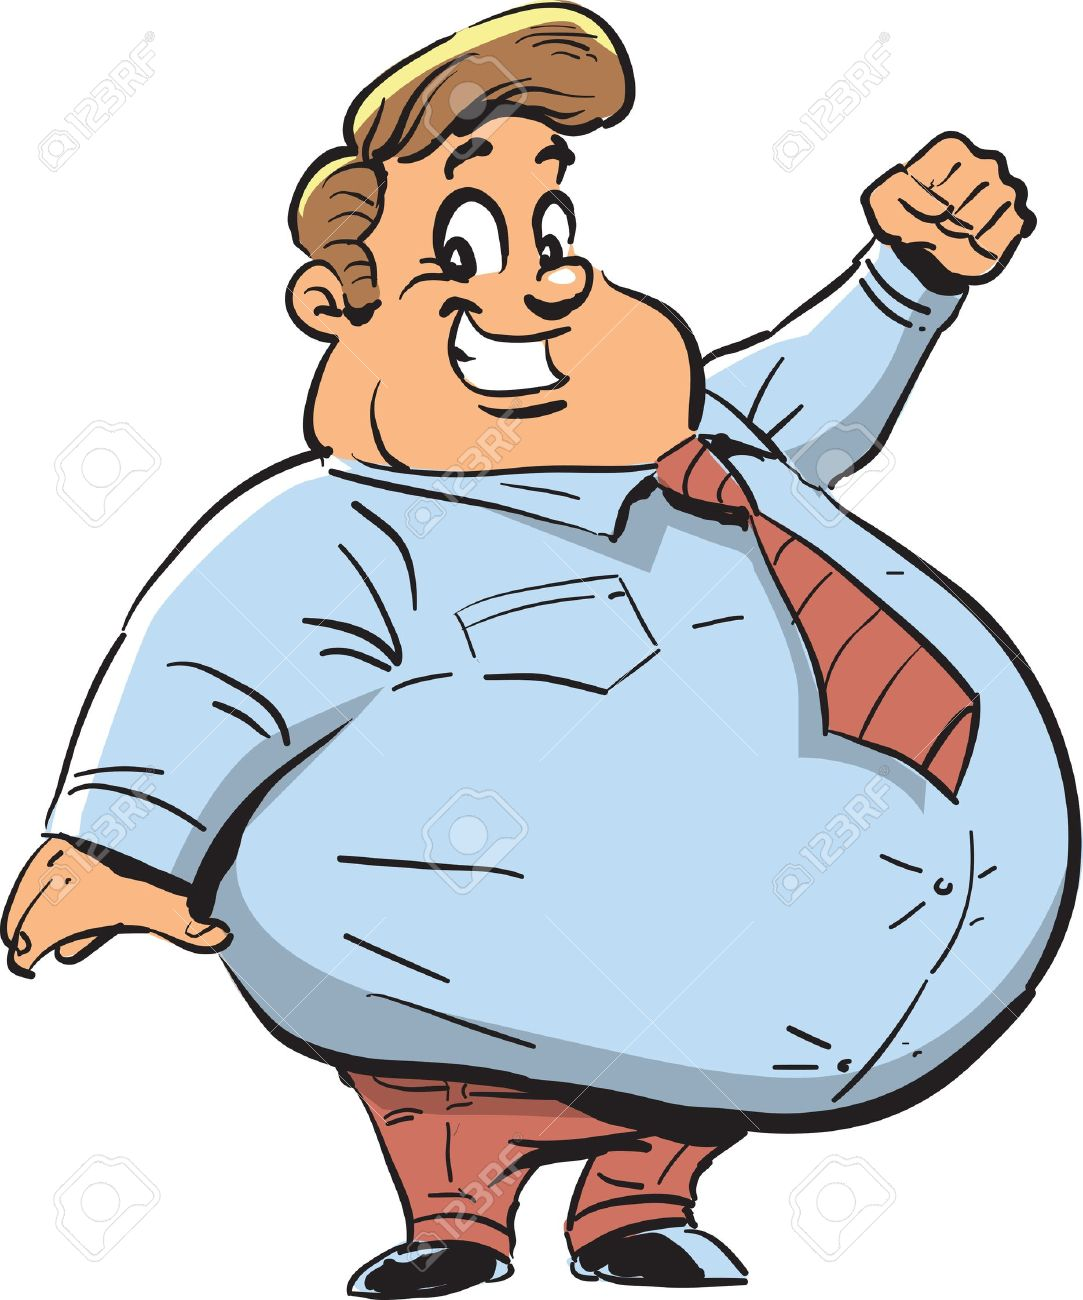 Clipart man with big smile clipart freeuse library Happy Fat Man With Big Smile Royalty Free Cliparts, Vectors, And ... clipart freeuse library